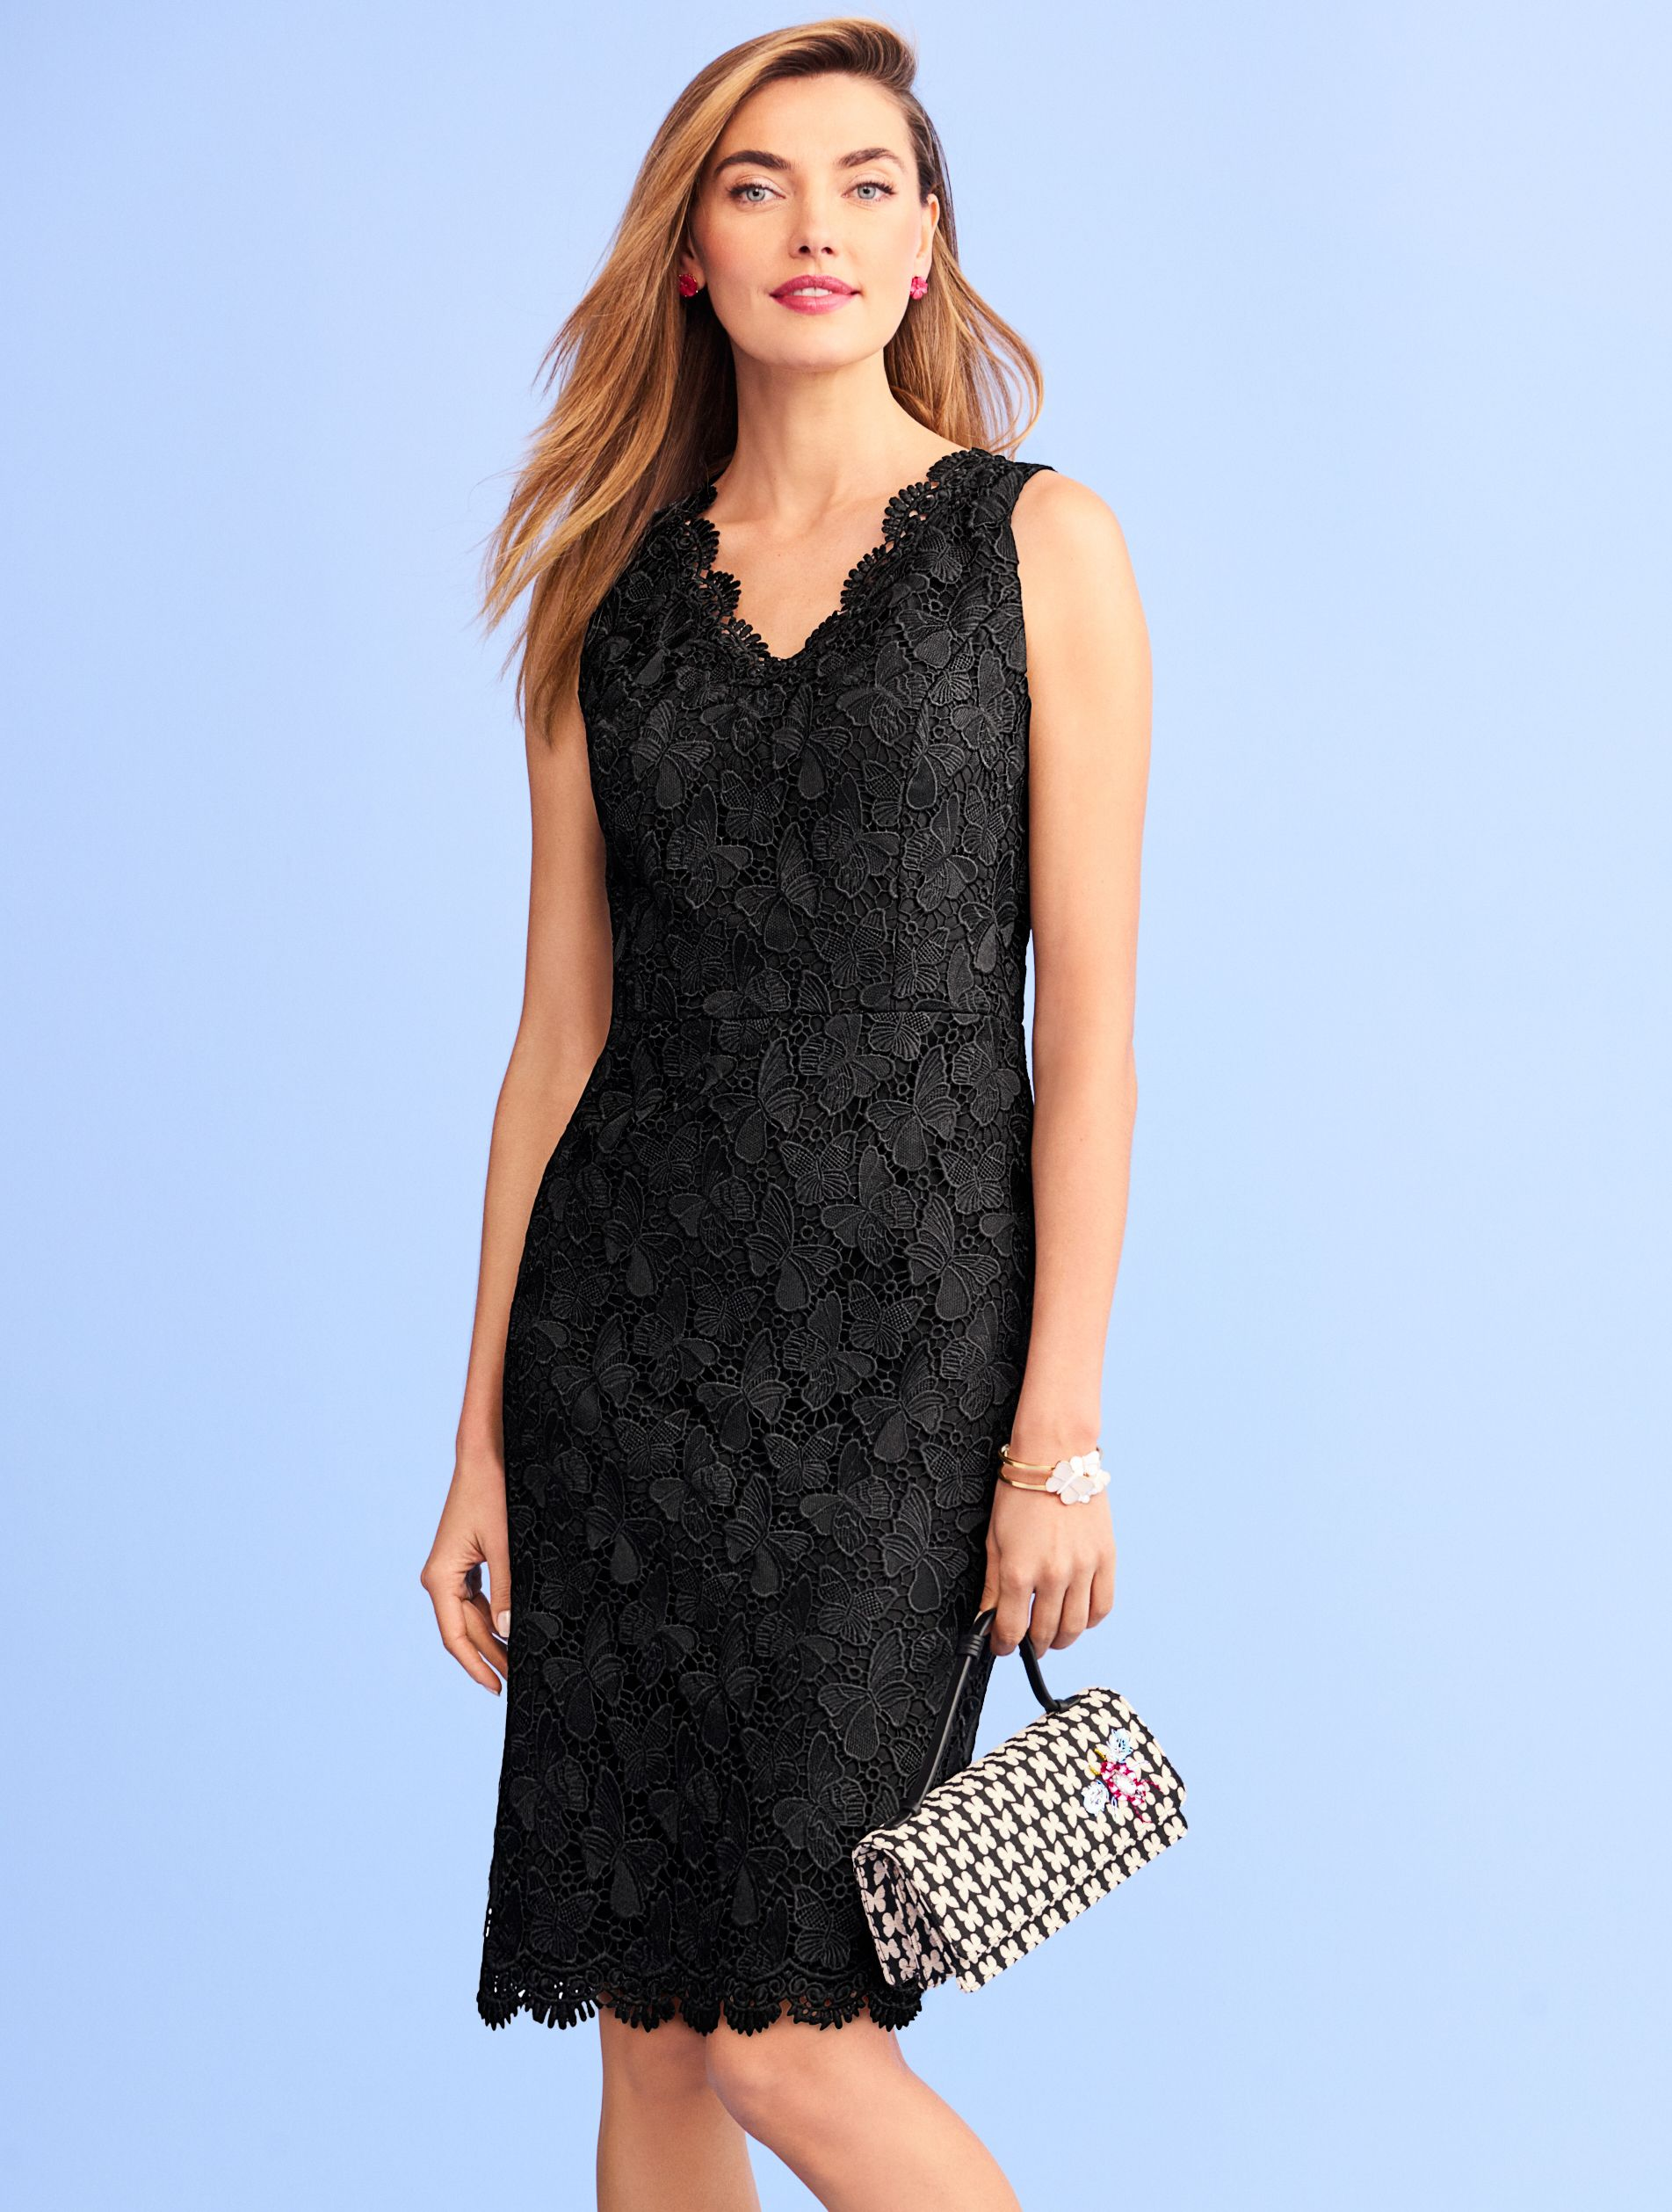 5497af79b55bb1 The updated LBD is graced with butterfly lace and scallop detail along the  neck and hem for showstopping elegance. The form-flattering silhouette  epitomizes ...